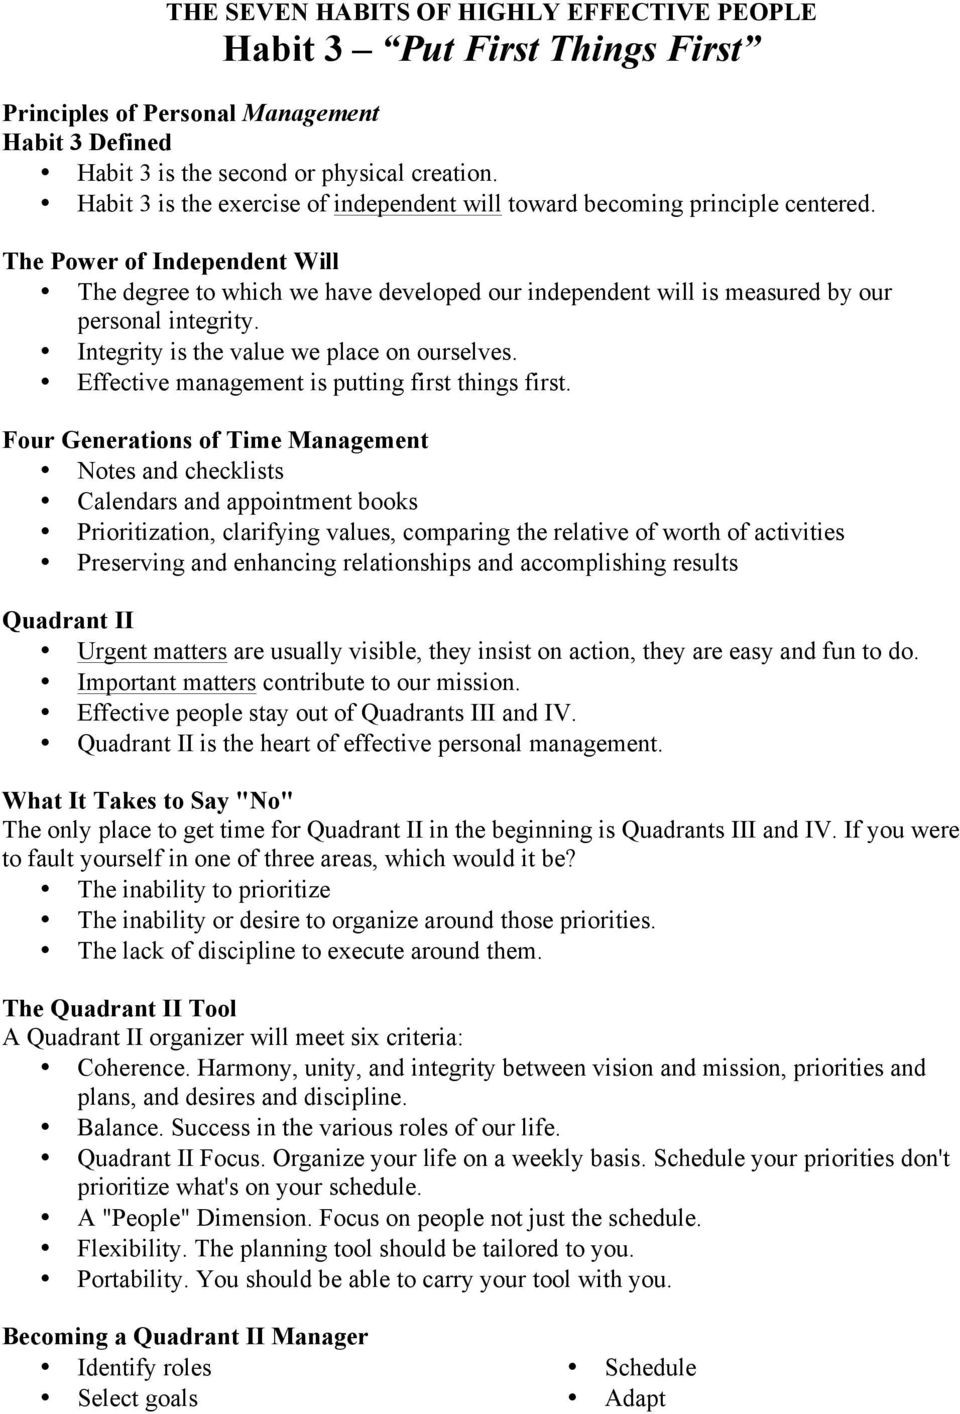 7 Habits Worksheet Pdf the Seven Habits Of Highly Effective People by Stephen R